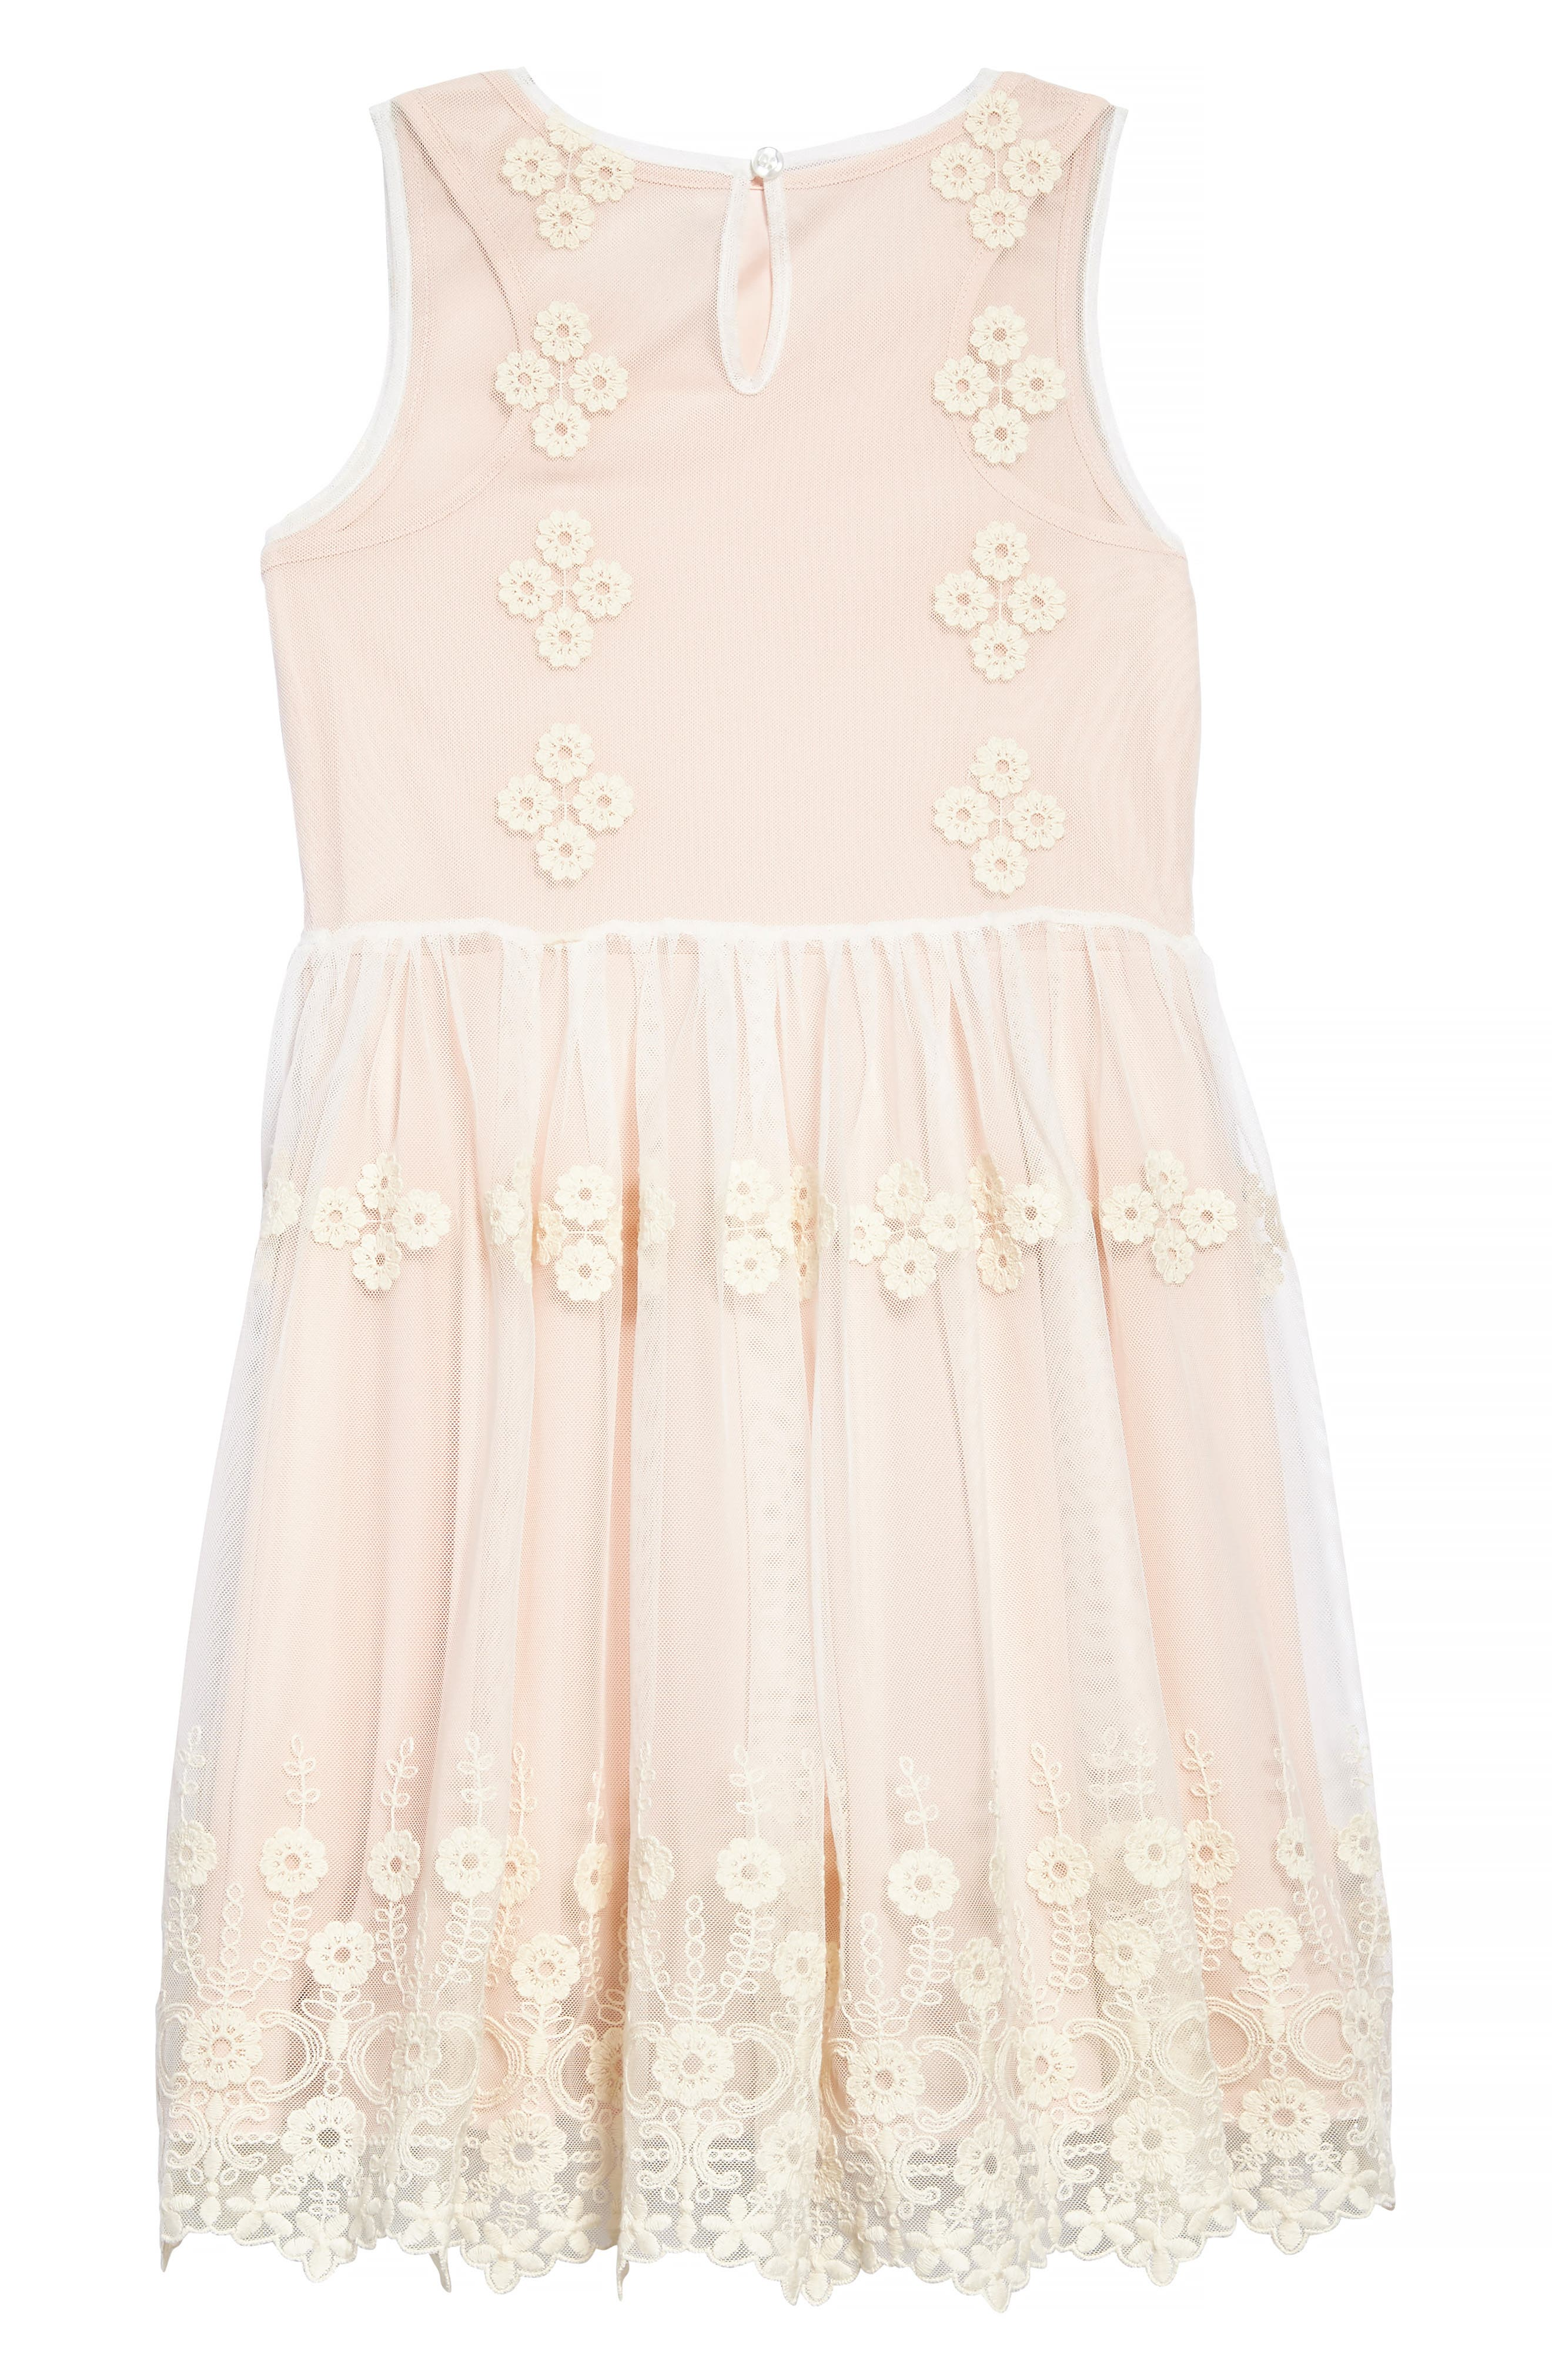 Embroidered Mesh Dress,                             Alternate thumbnail 2, color,                             650